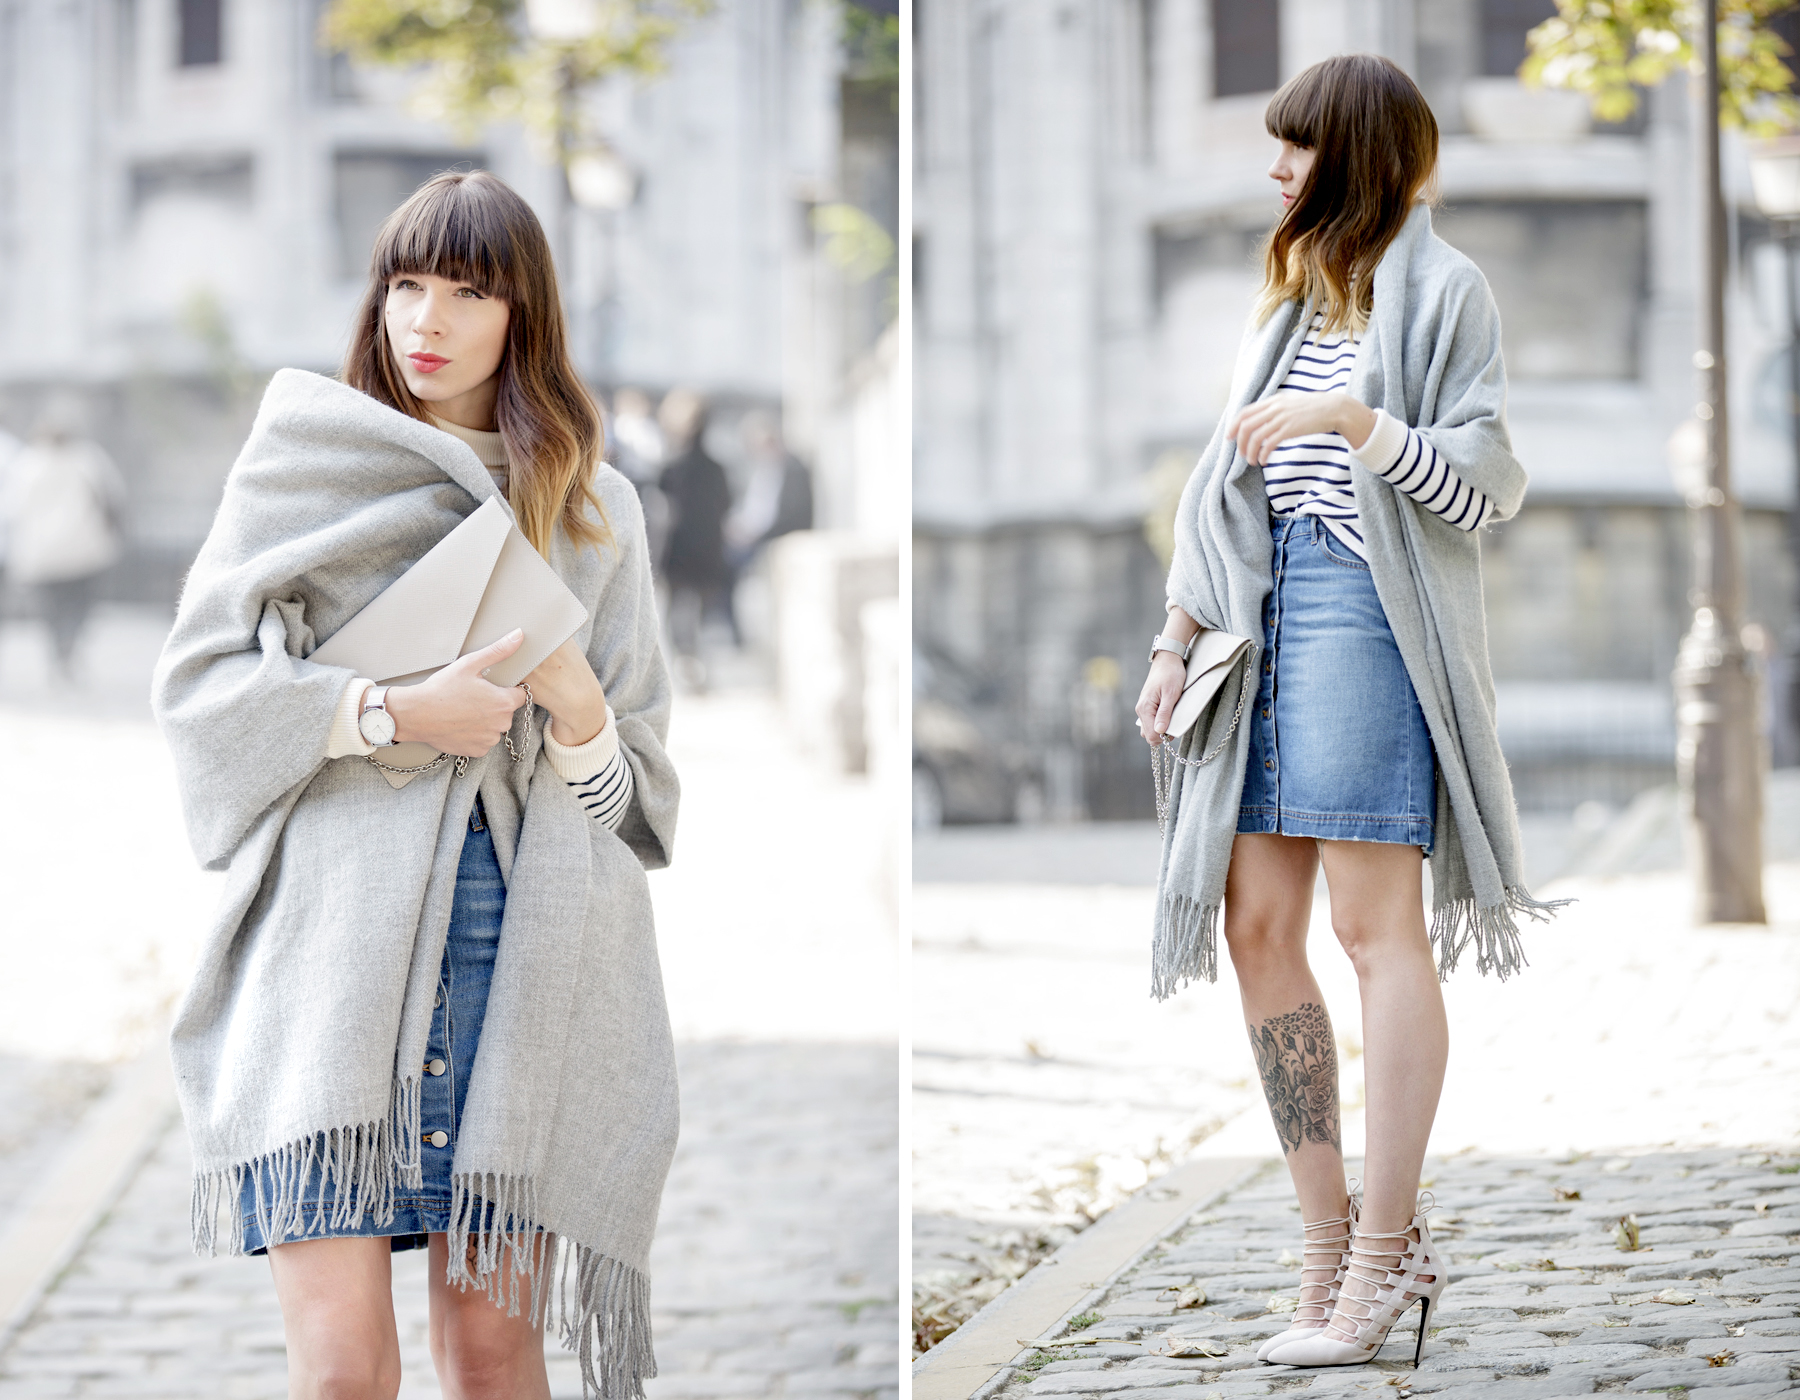 outfit ootd denim skirt grey scarf acne aquazzura high heels strappy montmartre sacre coeur paris streetstyle fashionblogger ricarda schernus cats & dogs blog pfw 1